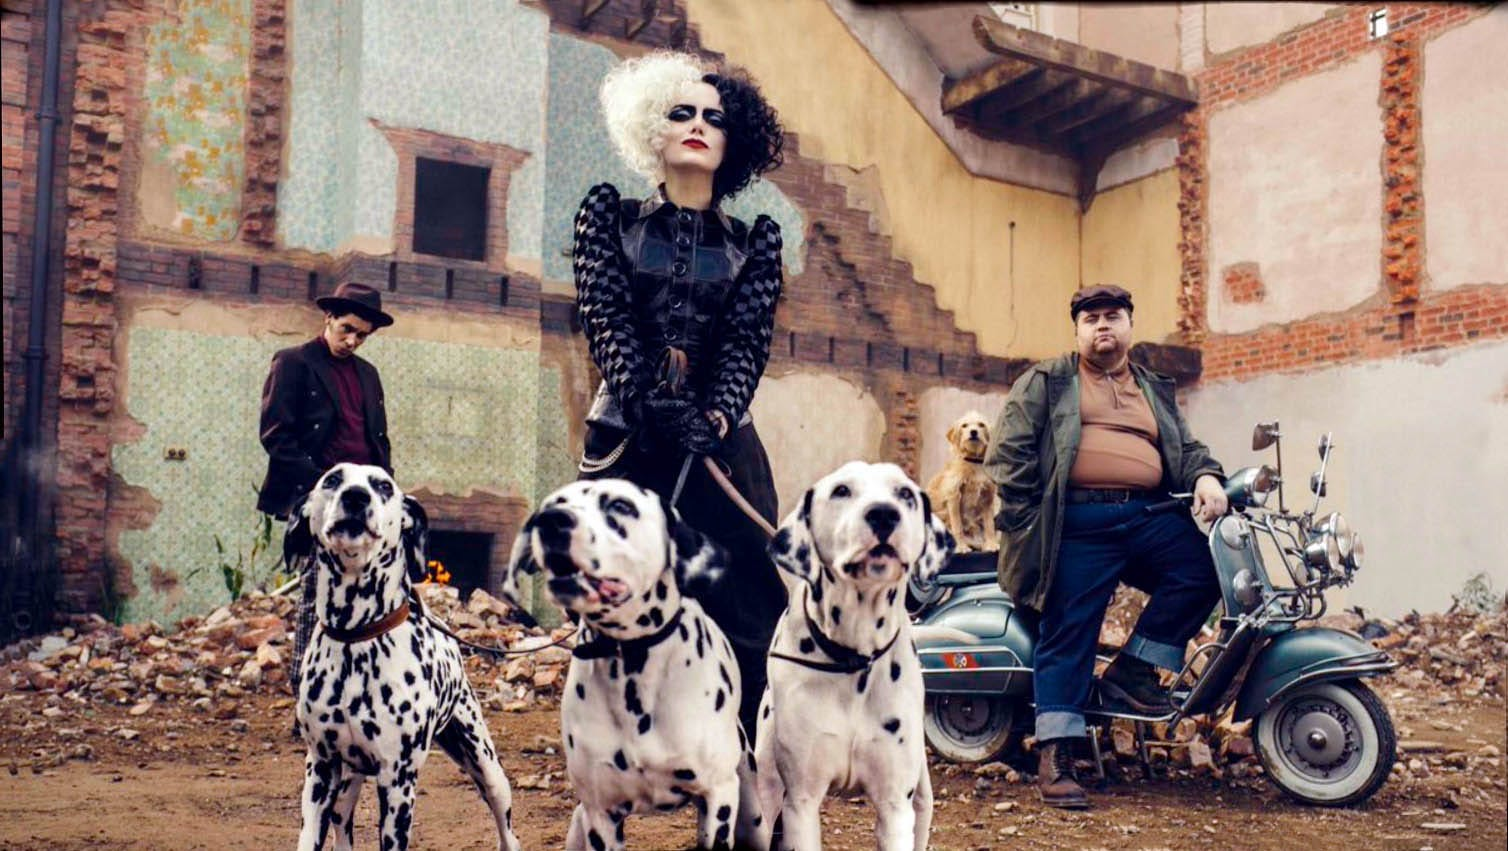 Disney's movie Cruella is ready for theaters and streaming